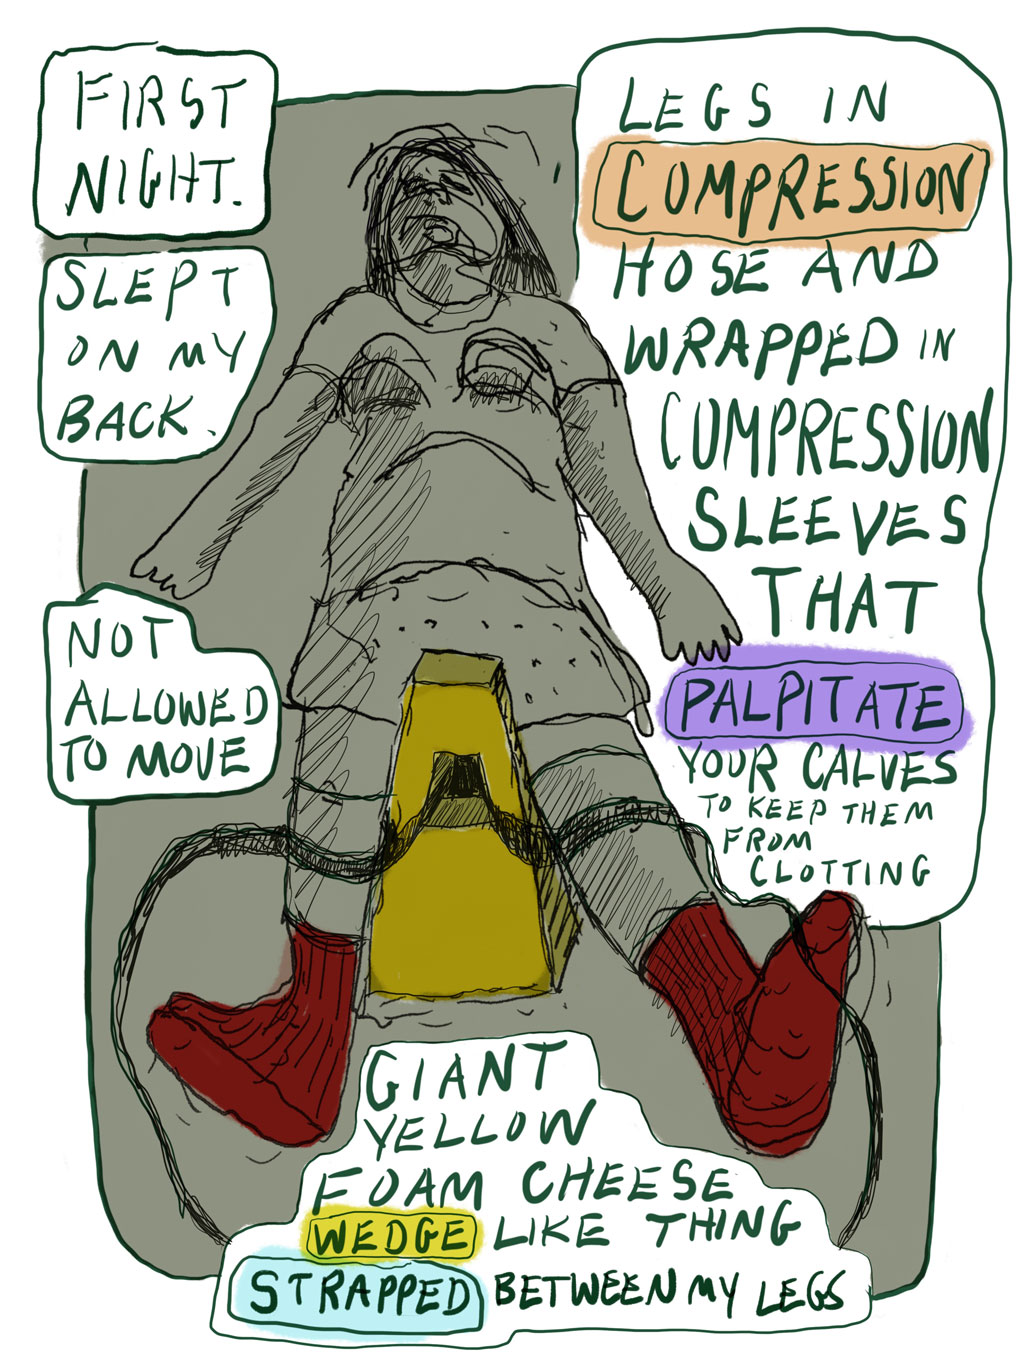 Panel 13: First night. Slept on my back, not allowed to move. Legs in compression hose and wrapped in compression sleeves that palpitate your calves to keep them from clotting. Giant yellow foam-cheese wedge-like thing strapped between my legs.